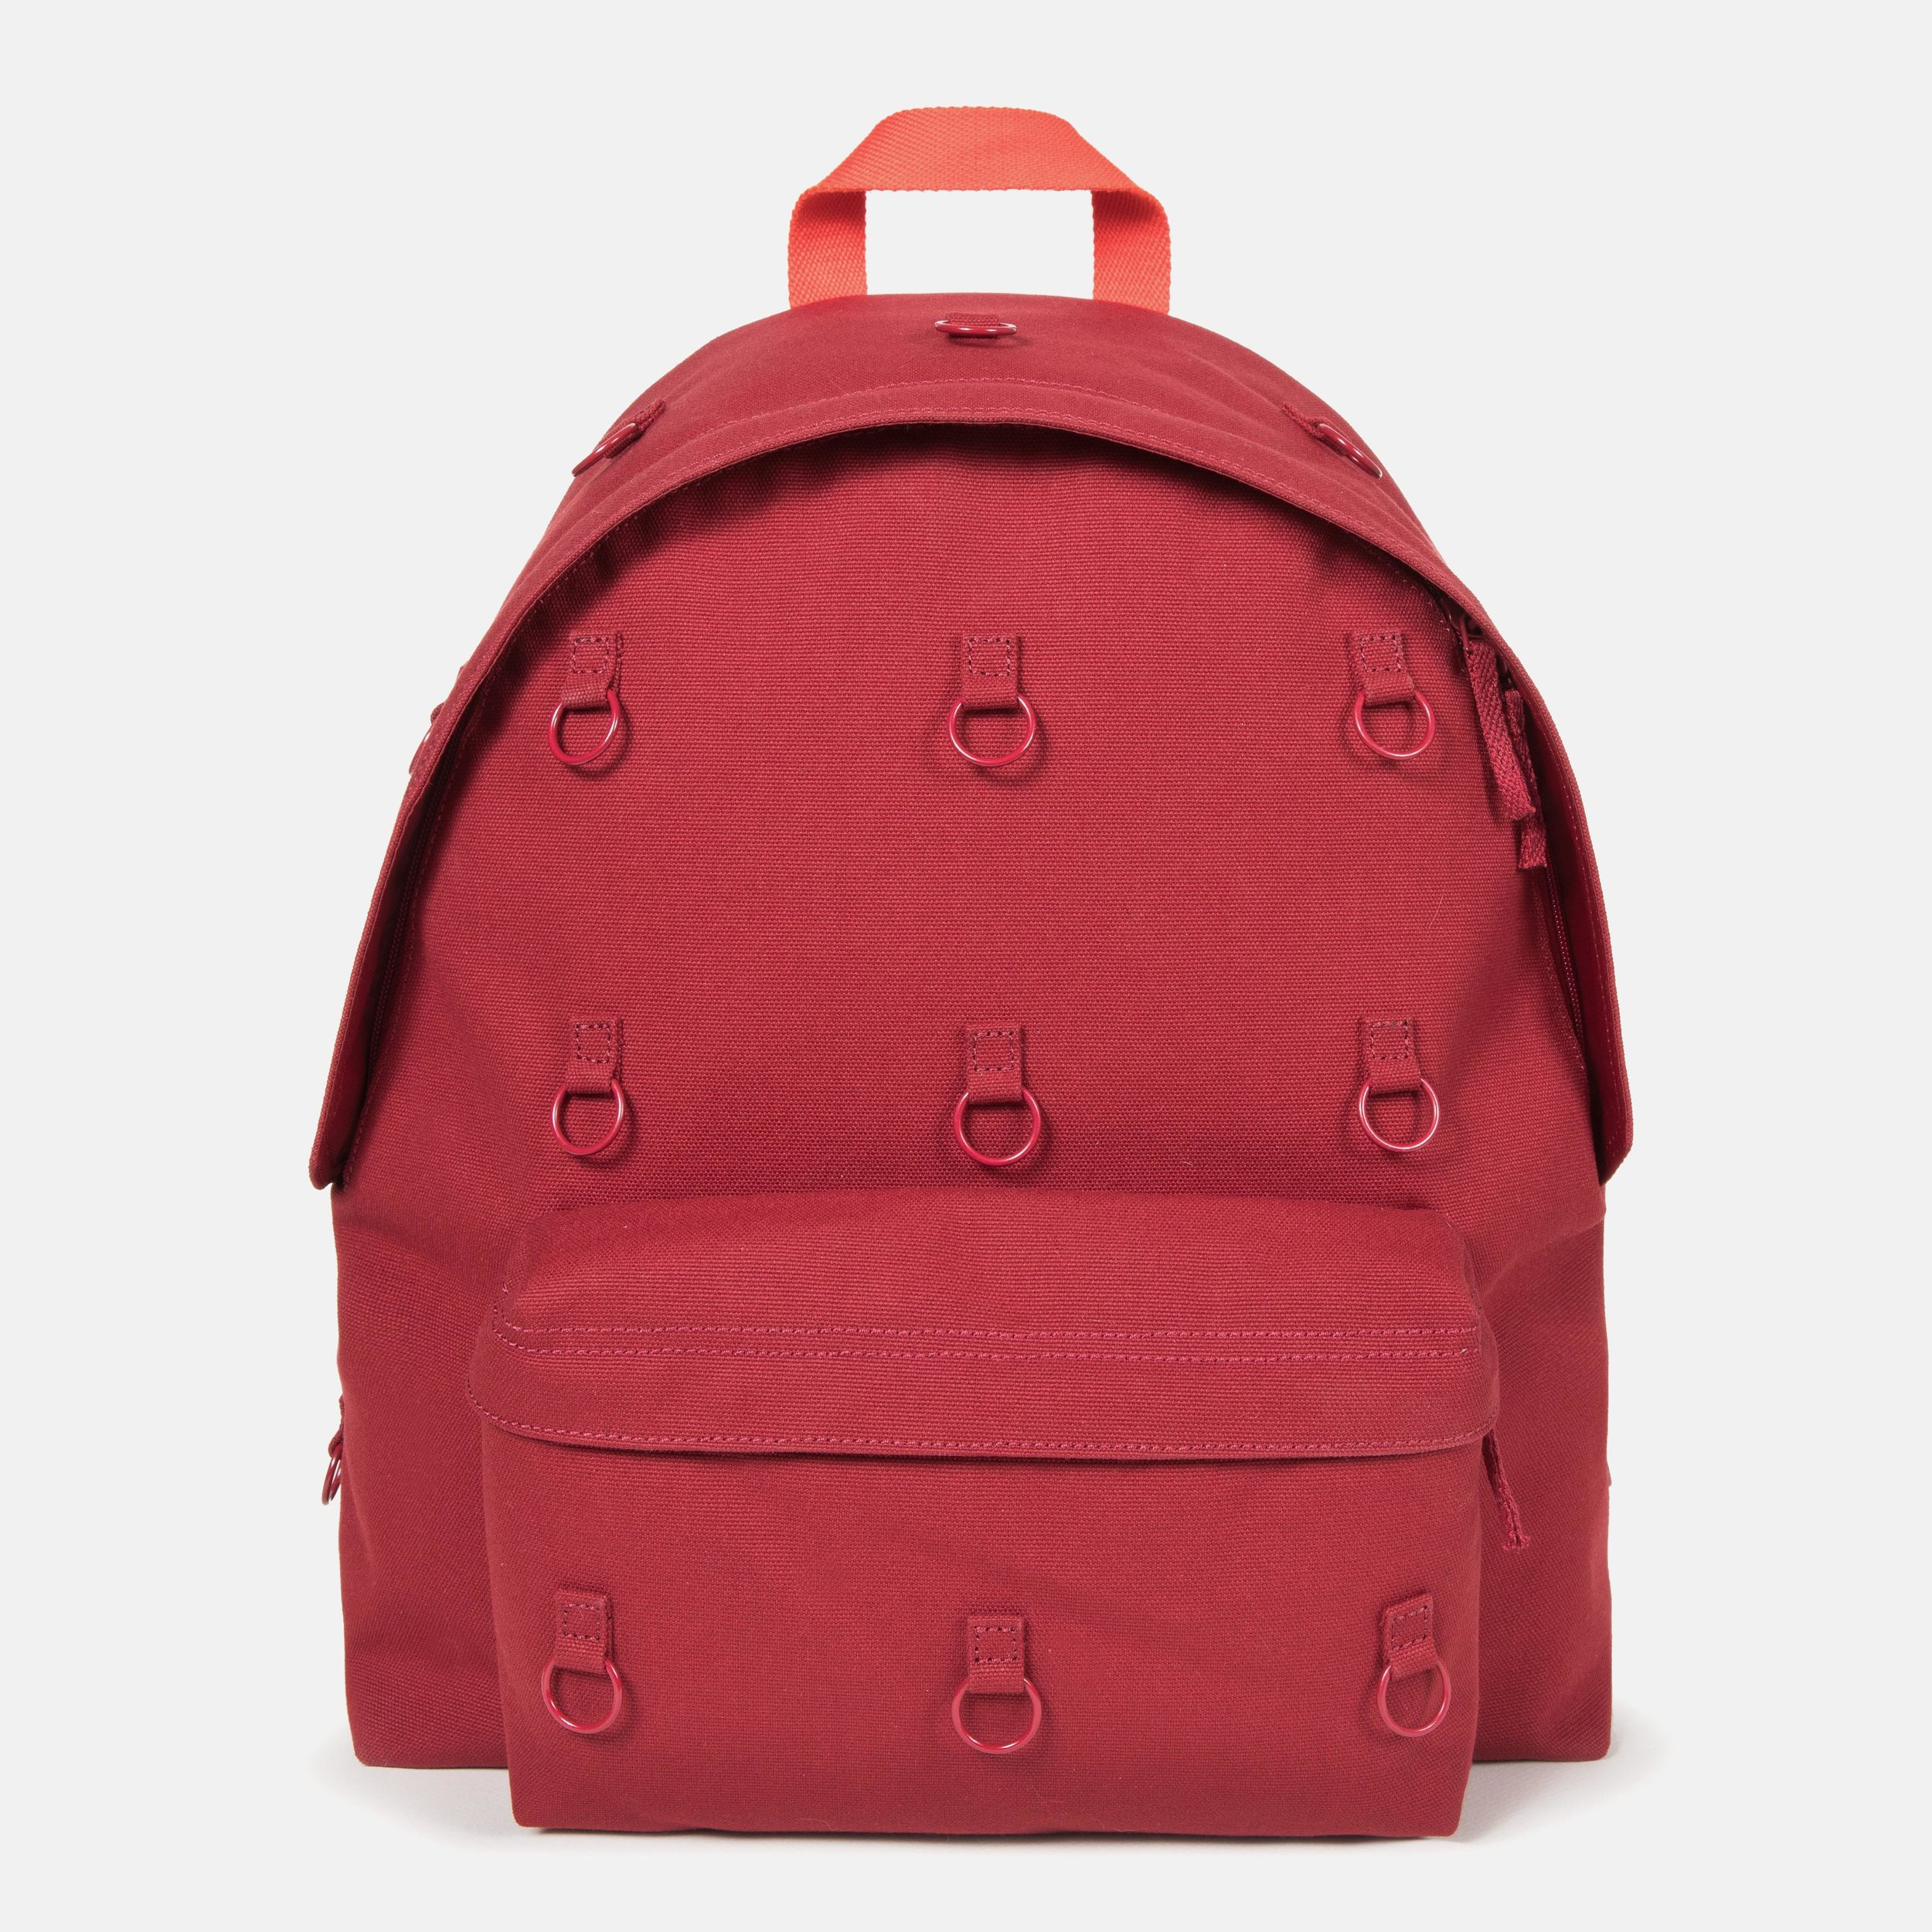 Eastpak X Raf Simons - Padded Loop - Burgundy_Orange - £200 - www.eastpak.jpg